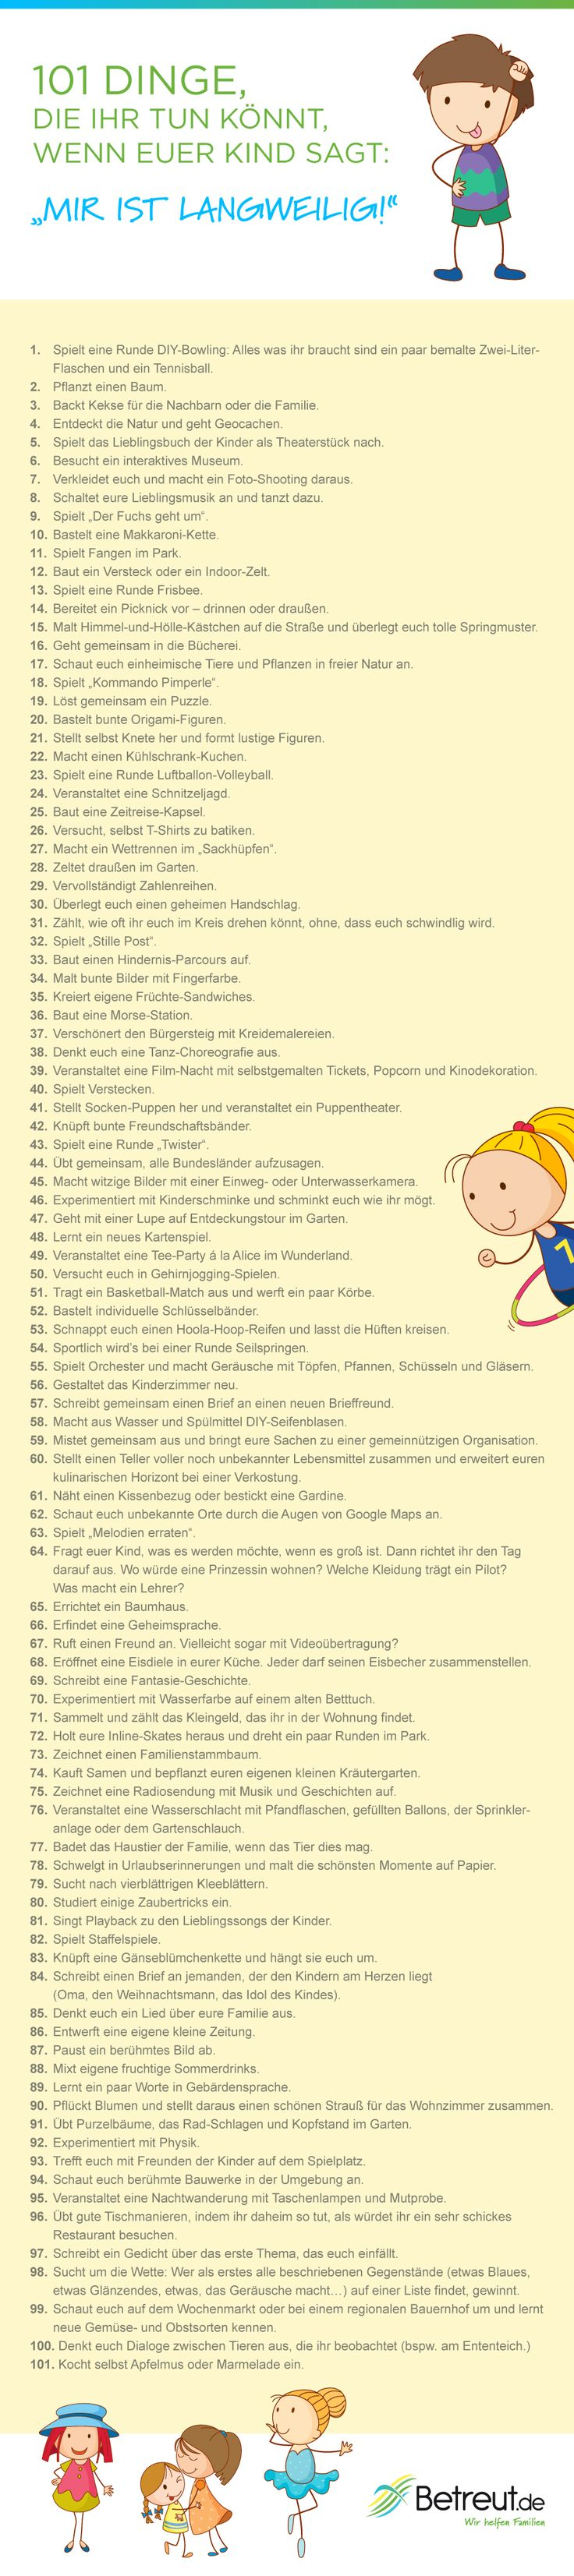 101 Tipps gegen LANGEWEILE für Kinder - Deutsch *** BORING - Things-To-Do-When... List German